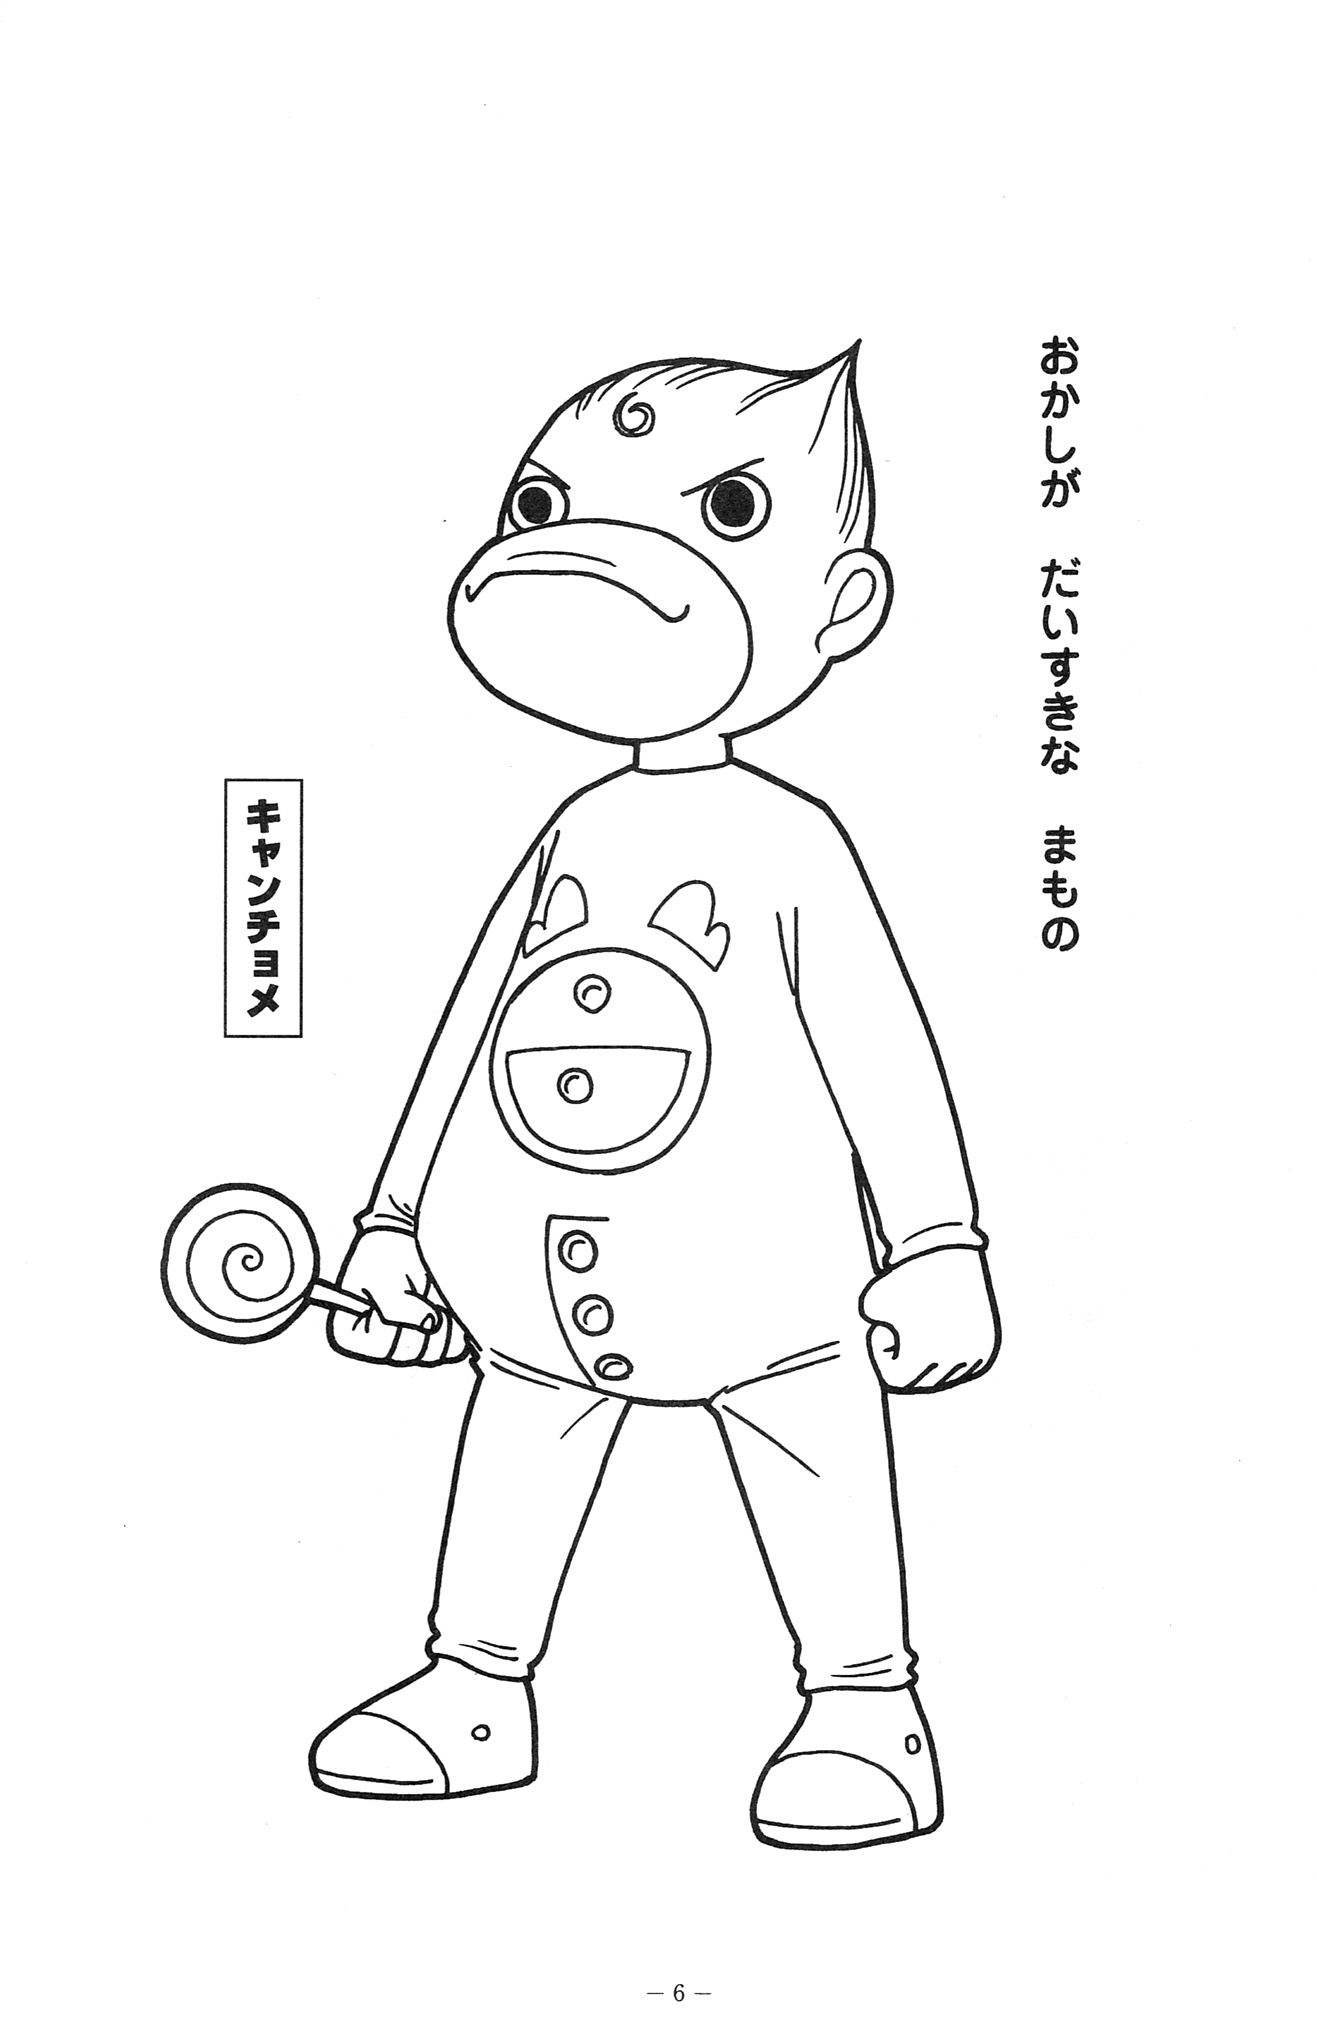 zatch bell coloring pages | Coloring Book Carnival Decorations Coloring Pages